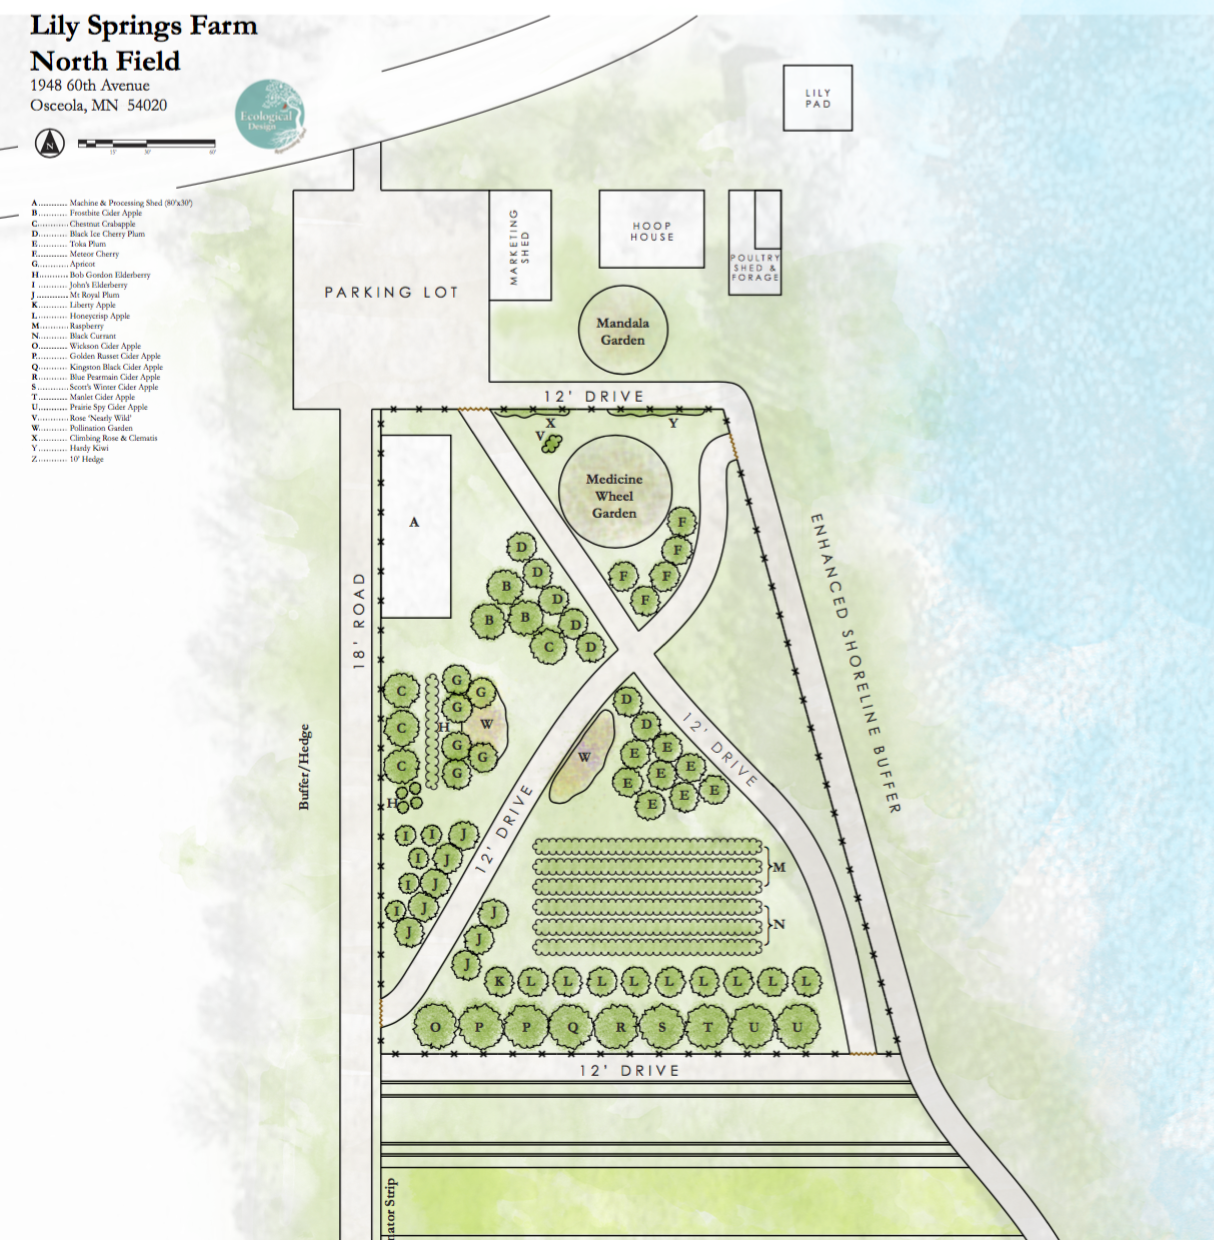 The layout for the North Field at Lily Springs Farm, courtesy of the brilliant team at Ecological Design (www.ecologicaldesign.land), Lindsay Rebhan and Paula Westmoreland.